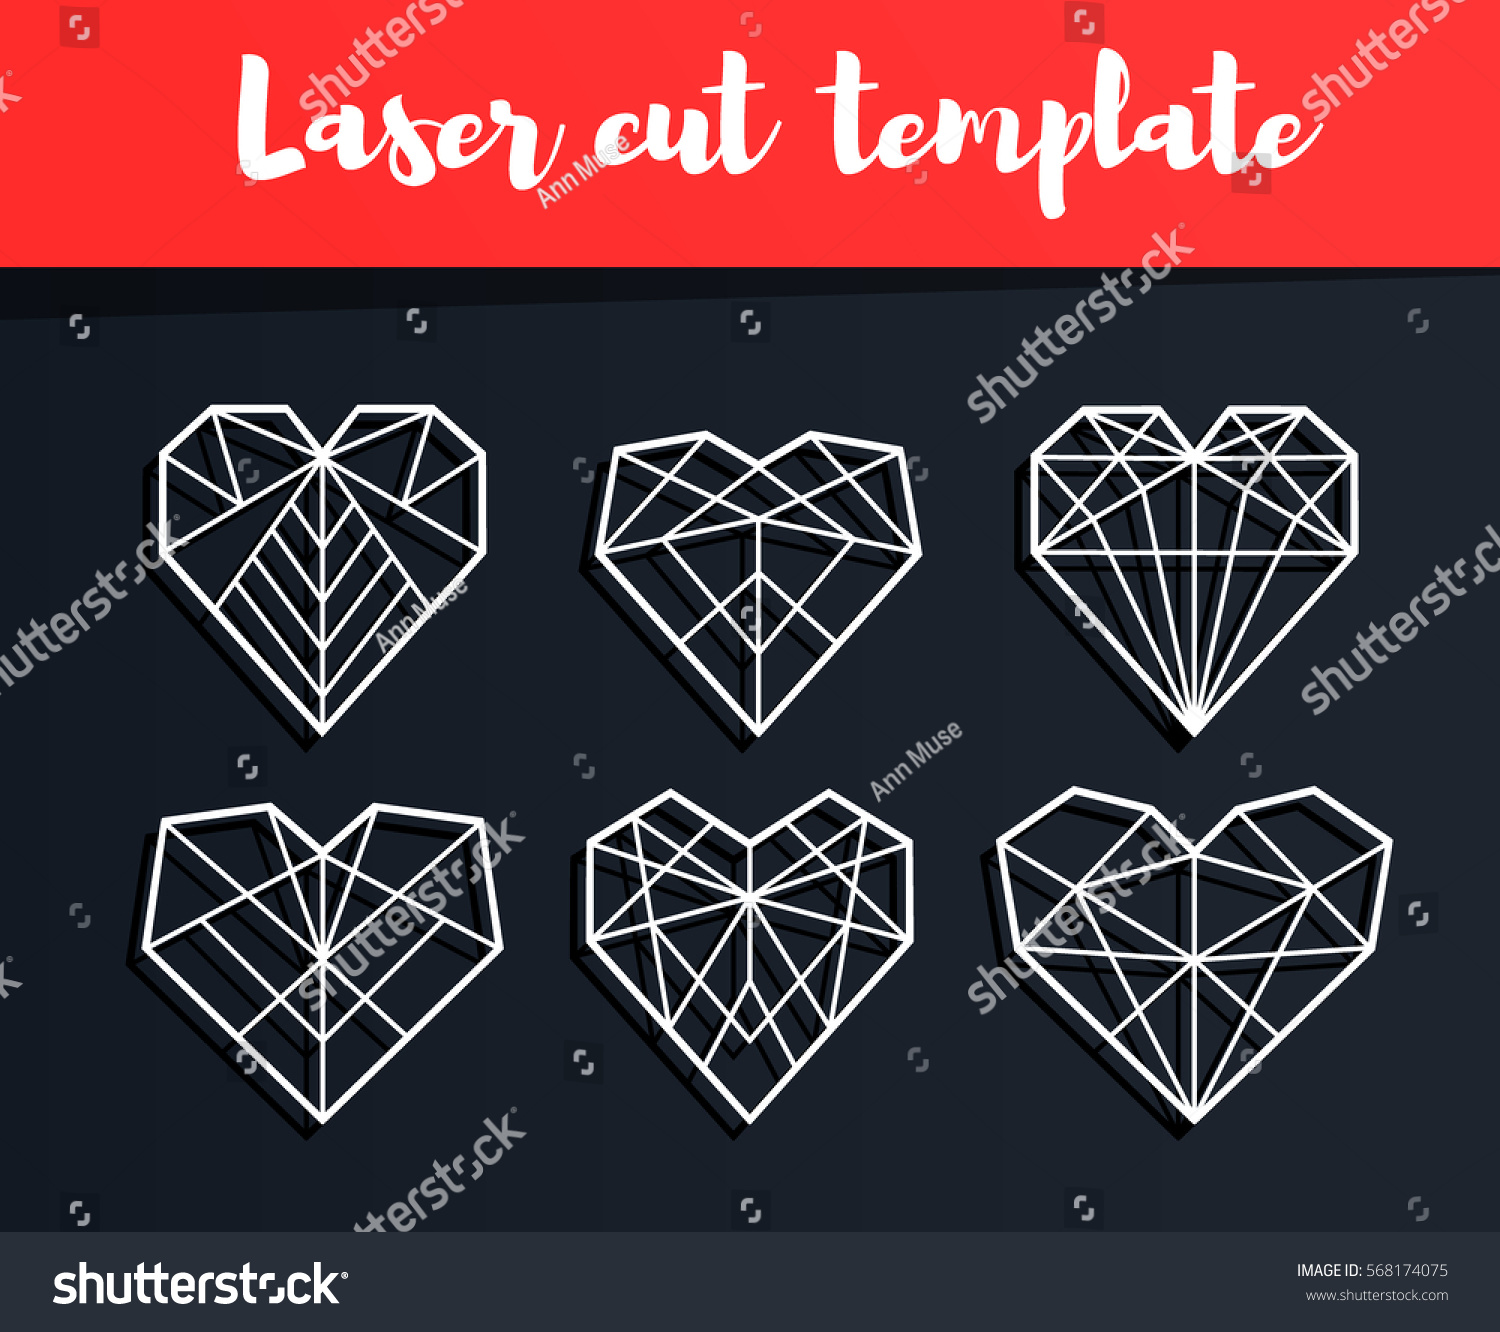 Laser Cut Template Valentines Card Geometric Stock Vector (Royalty ...